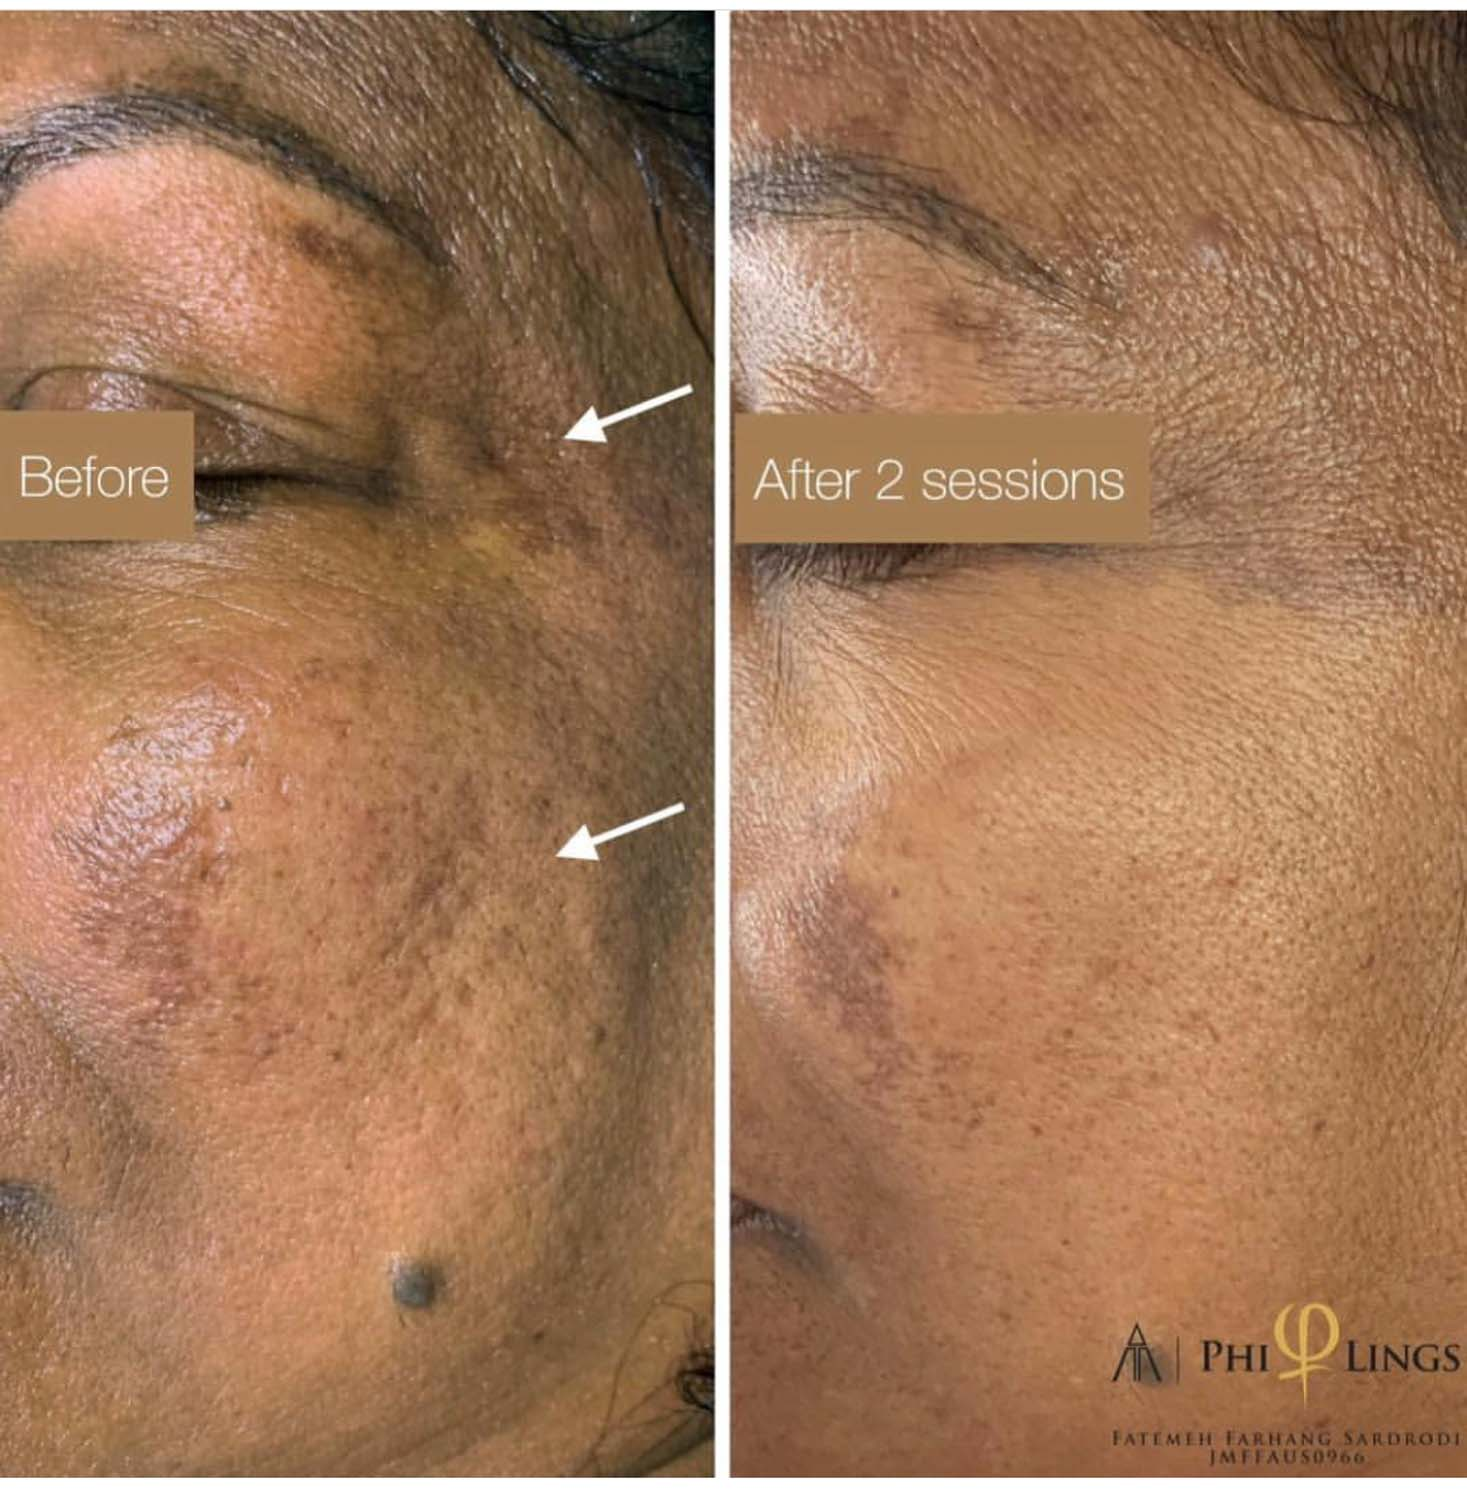 skin spots improved by microneedling